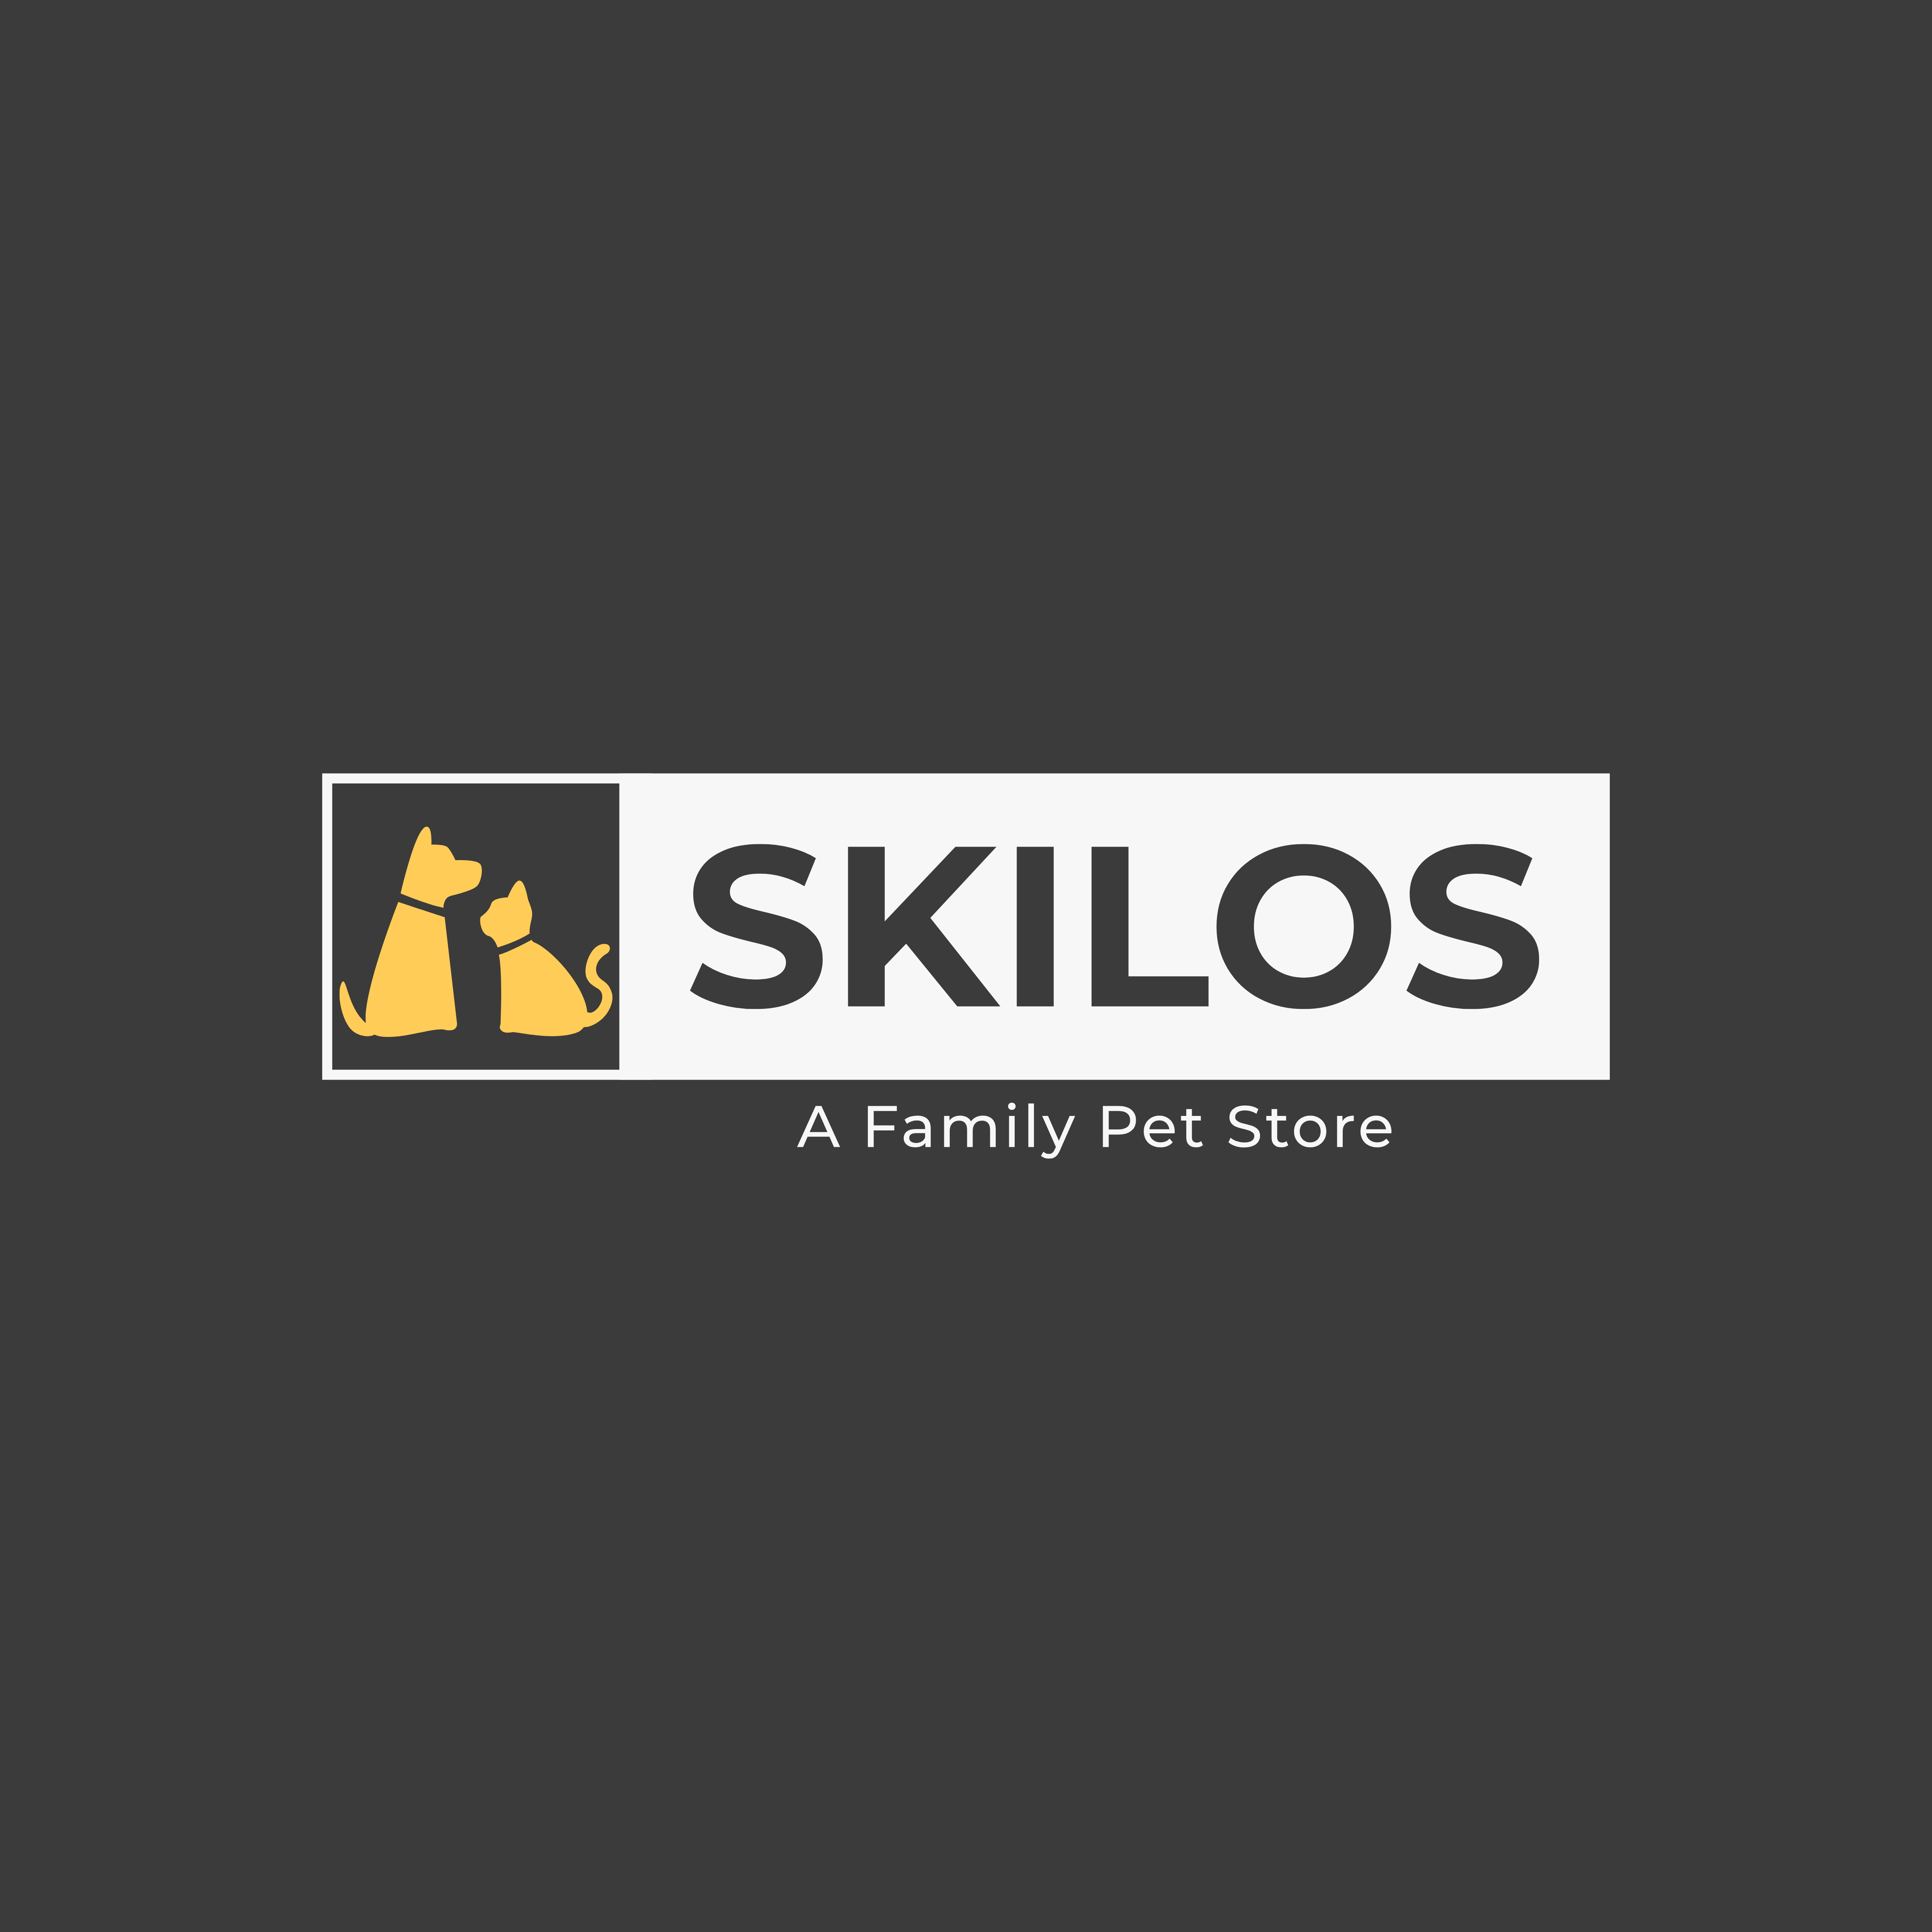 Skilos – New Pet Store – To Open April 15th, 2021 on Lower East Side